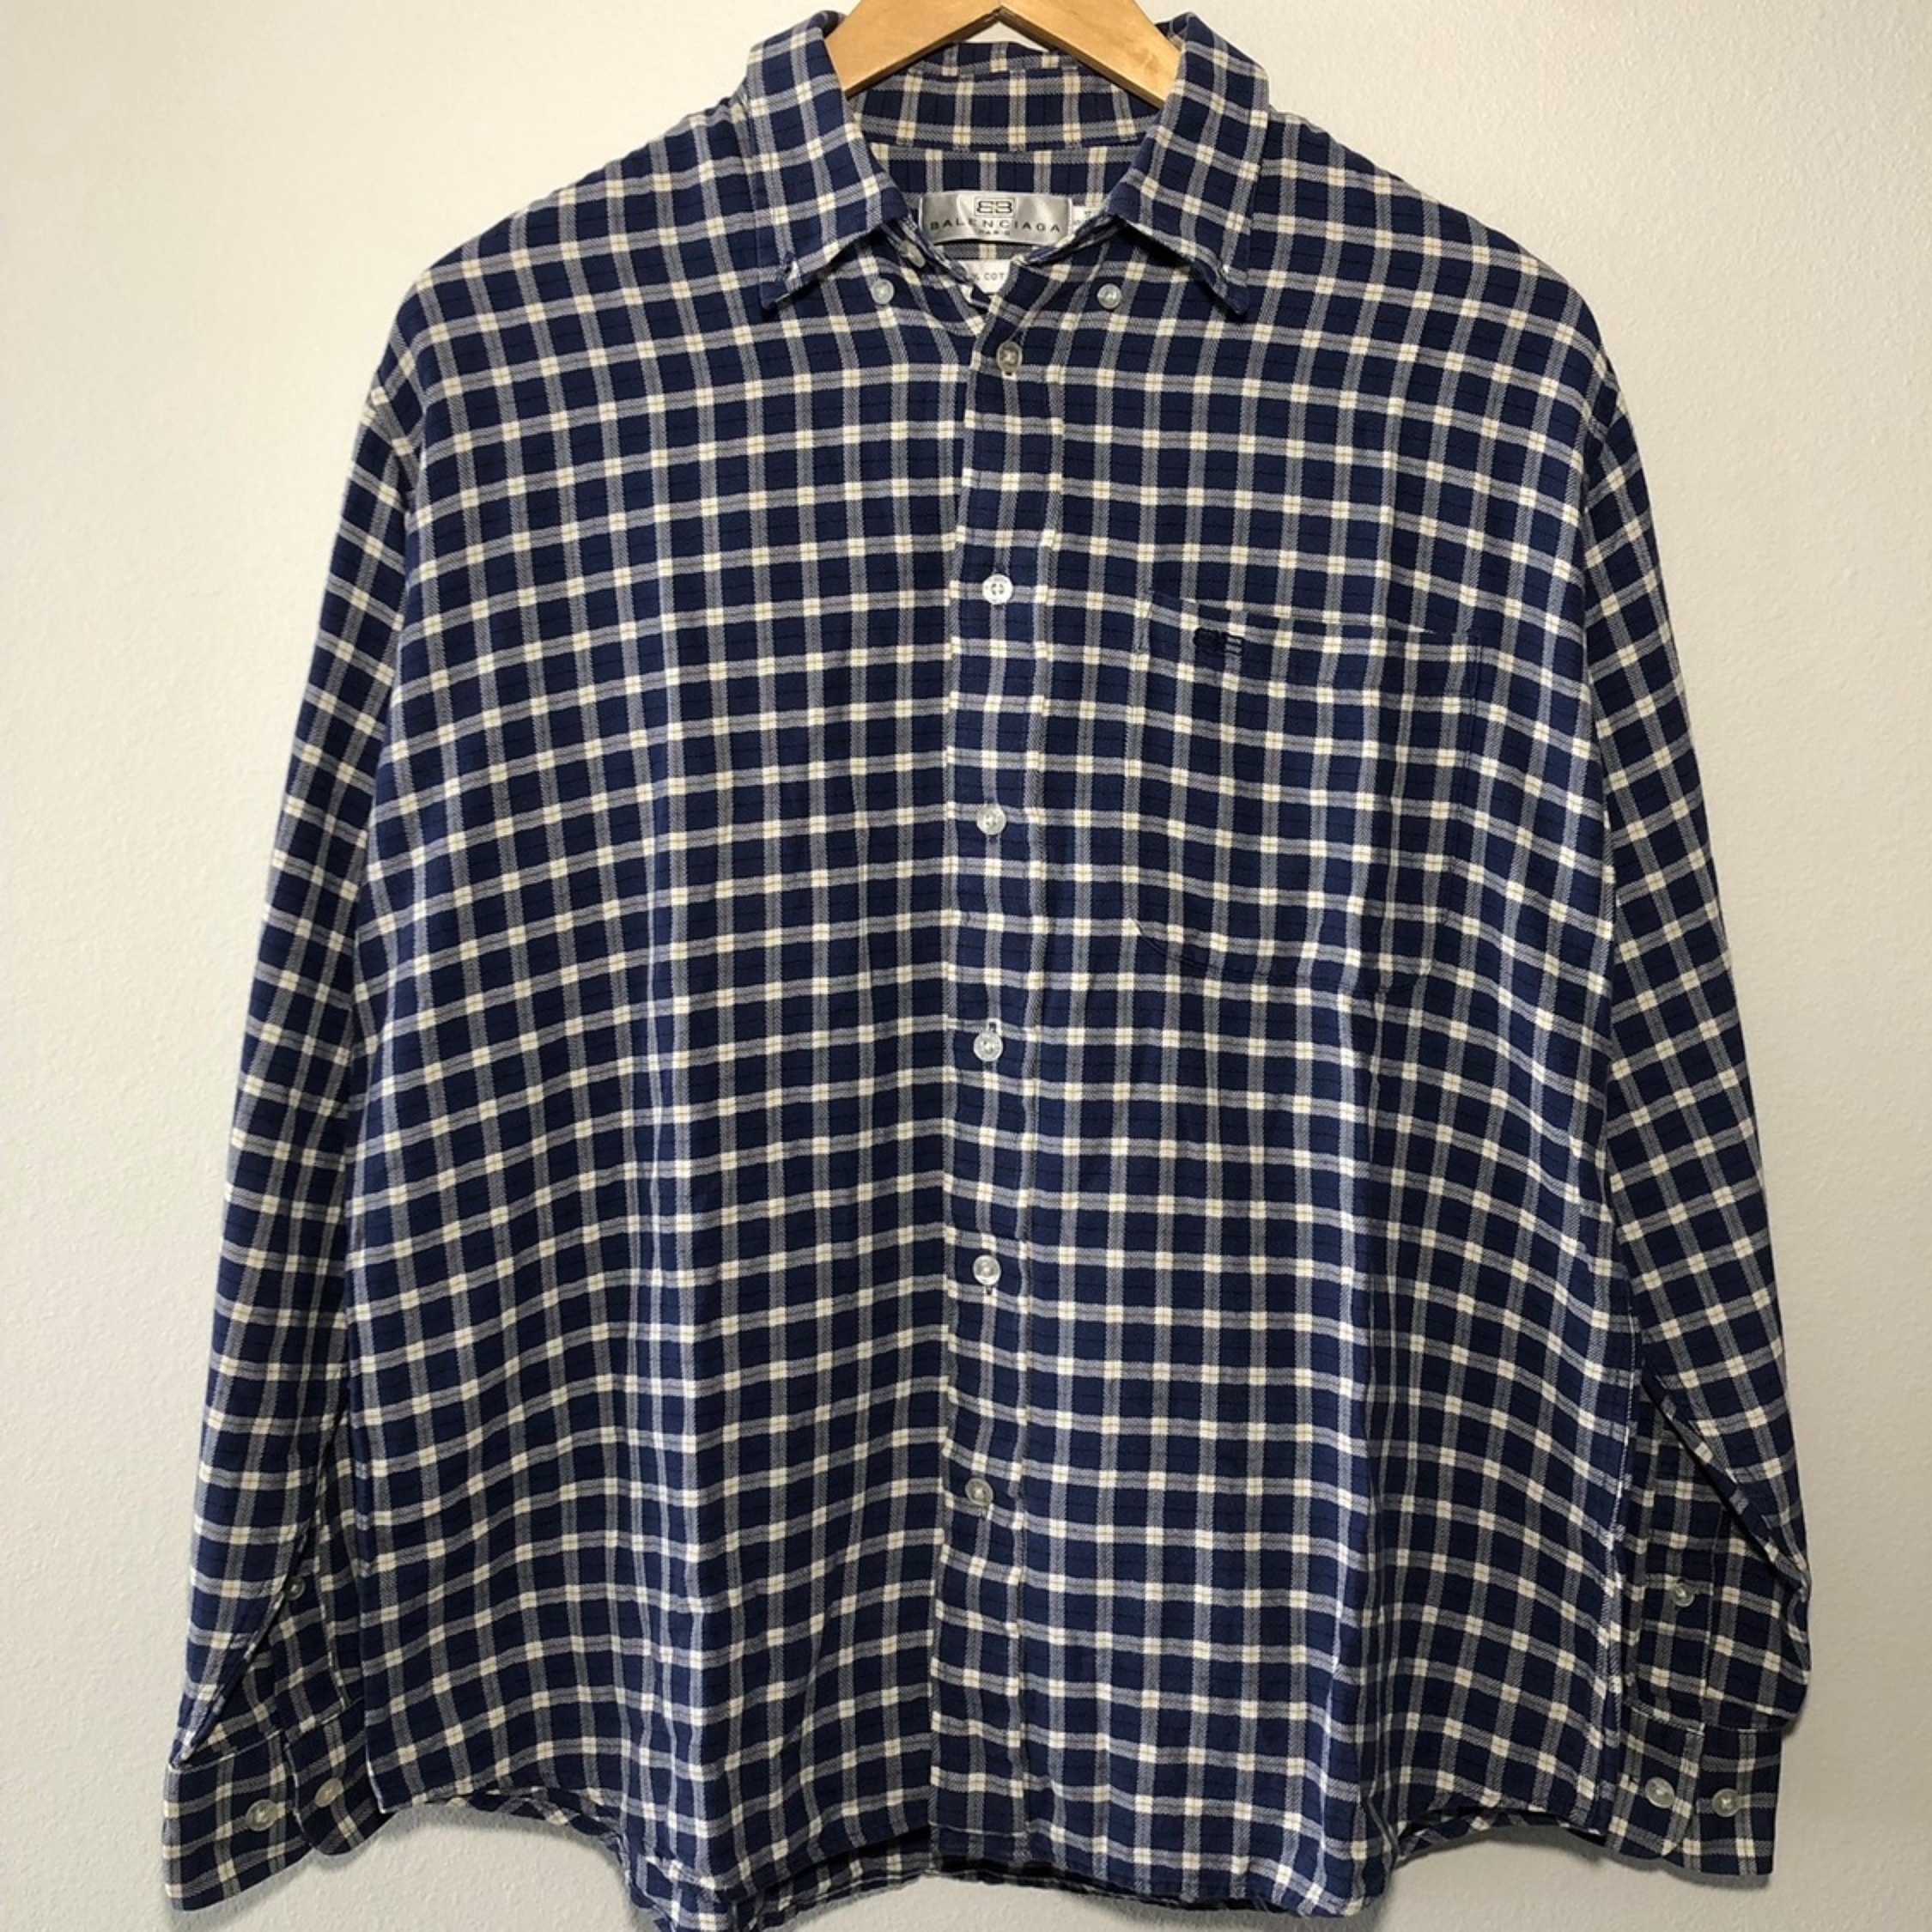 Vintage 90s Stussy Short Sleeve Button Down Gingham Made in USA Shirt L